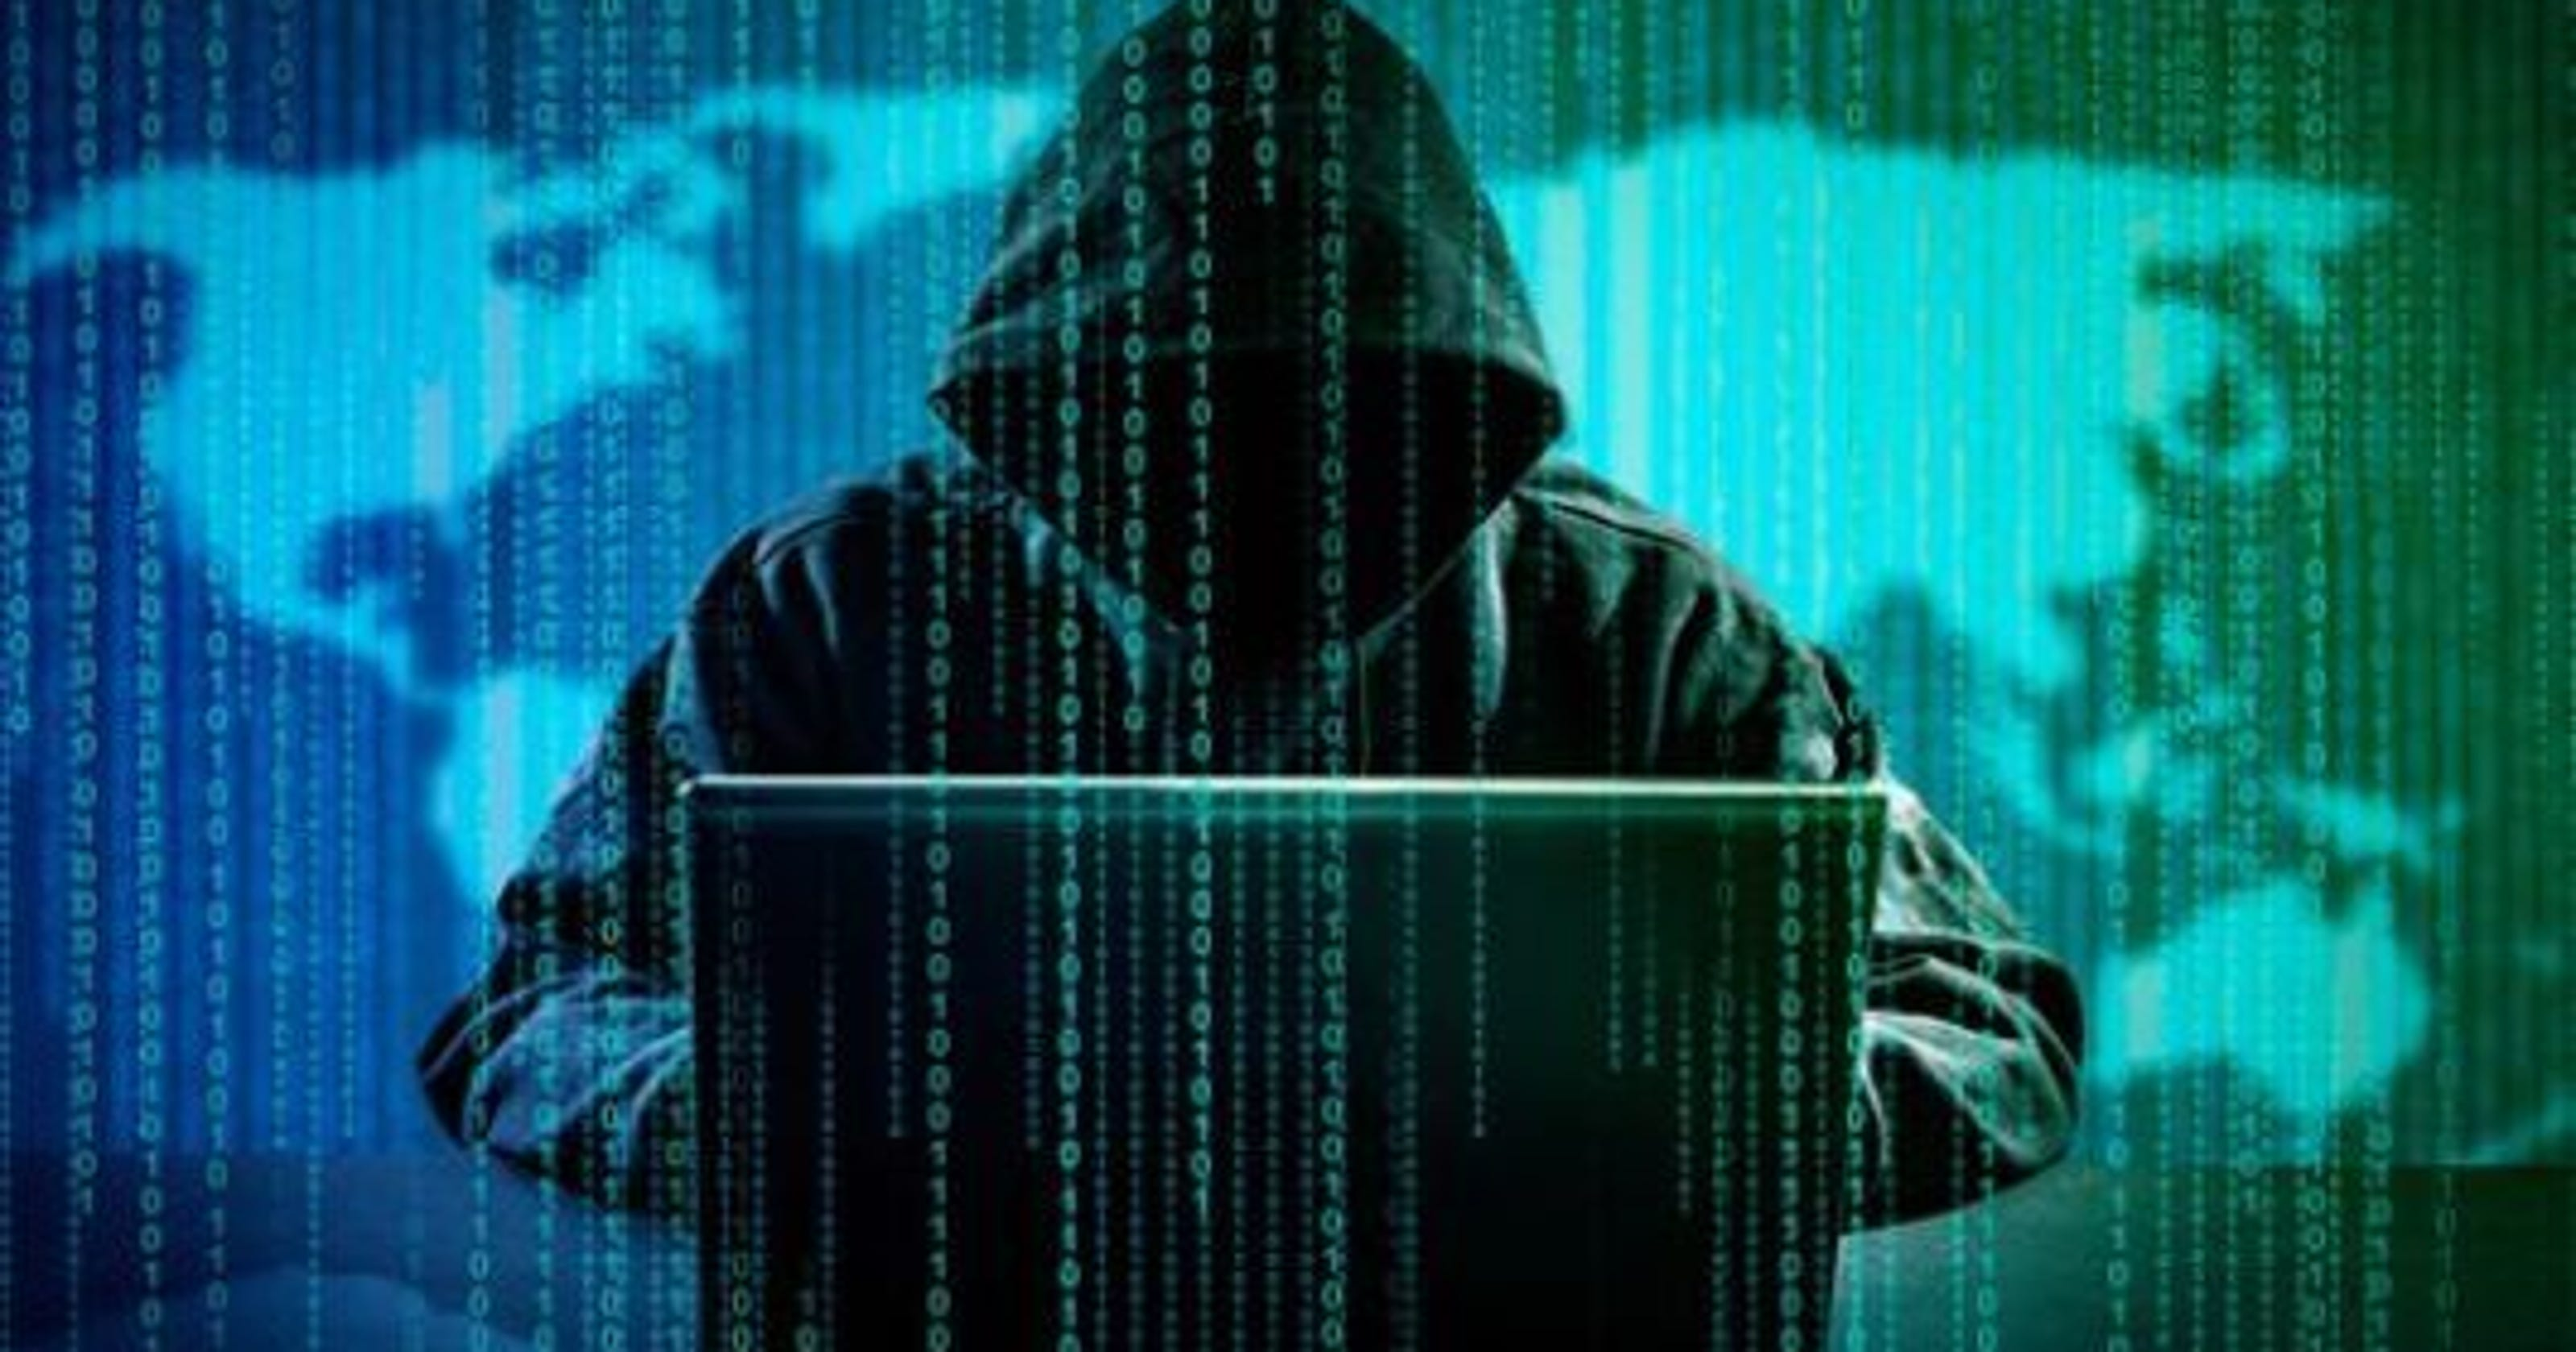 Data breach predictions: 6 hacks that will likely happen in 2019